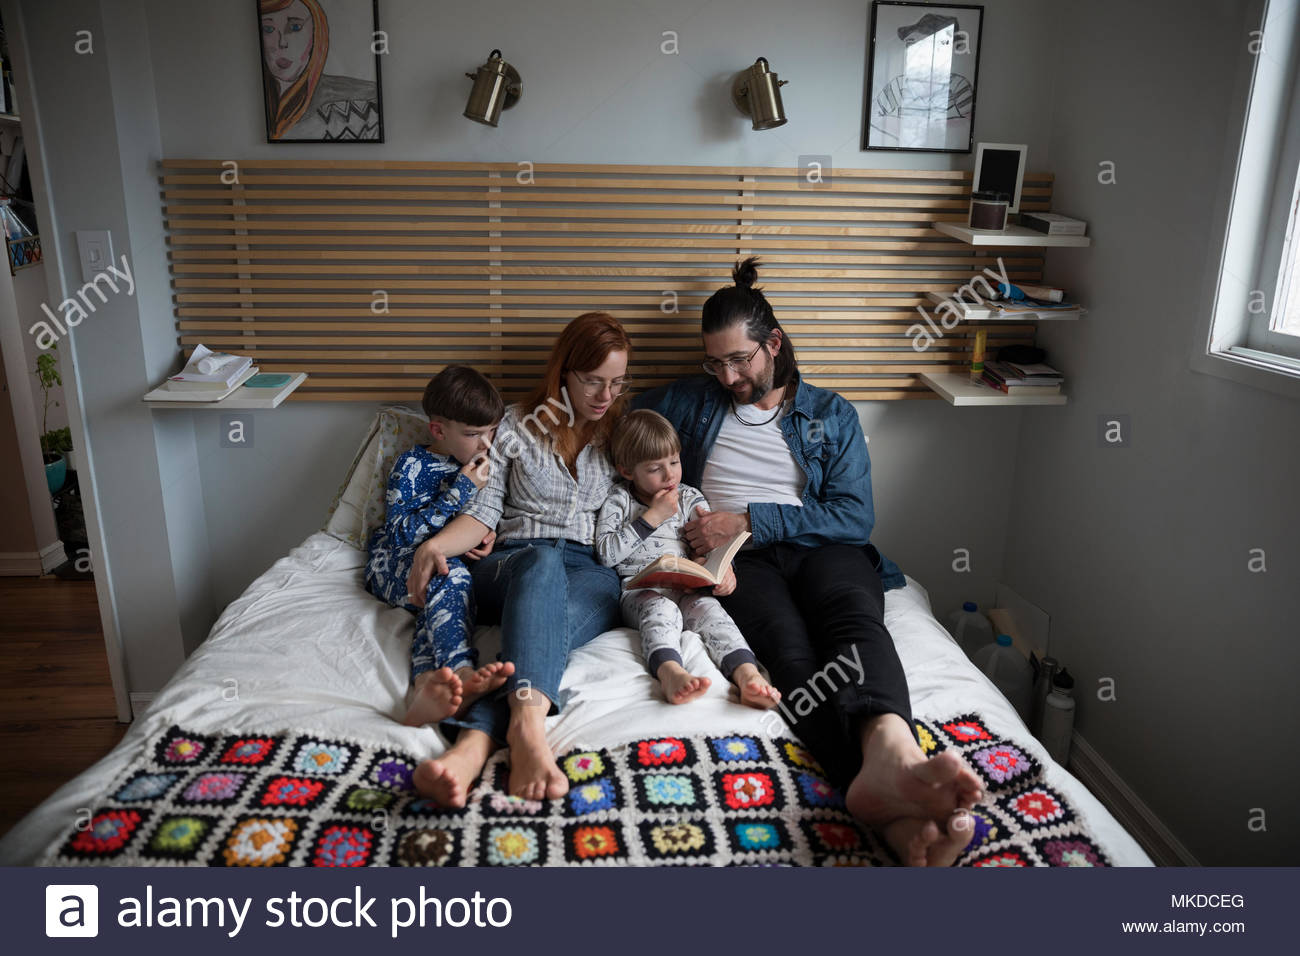 Family reading bedtime story book on bed - Stock Image